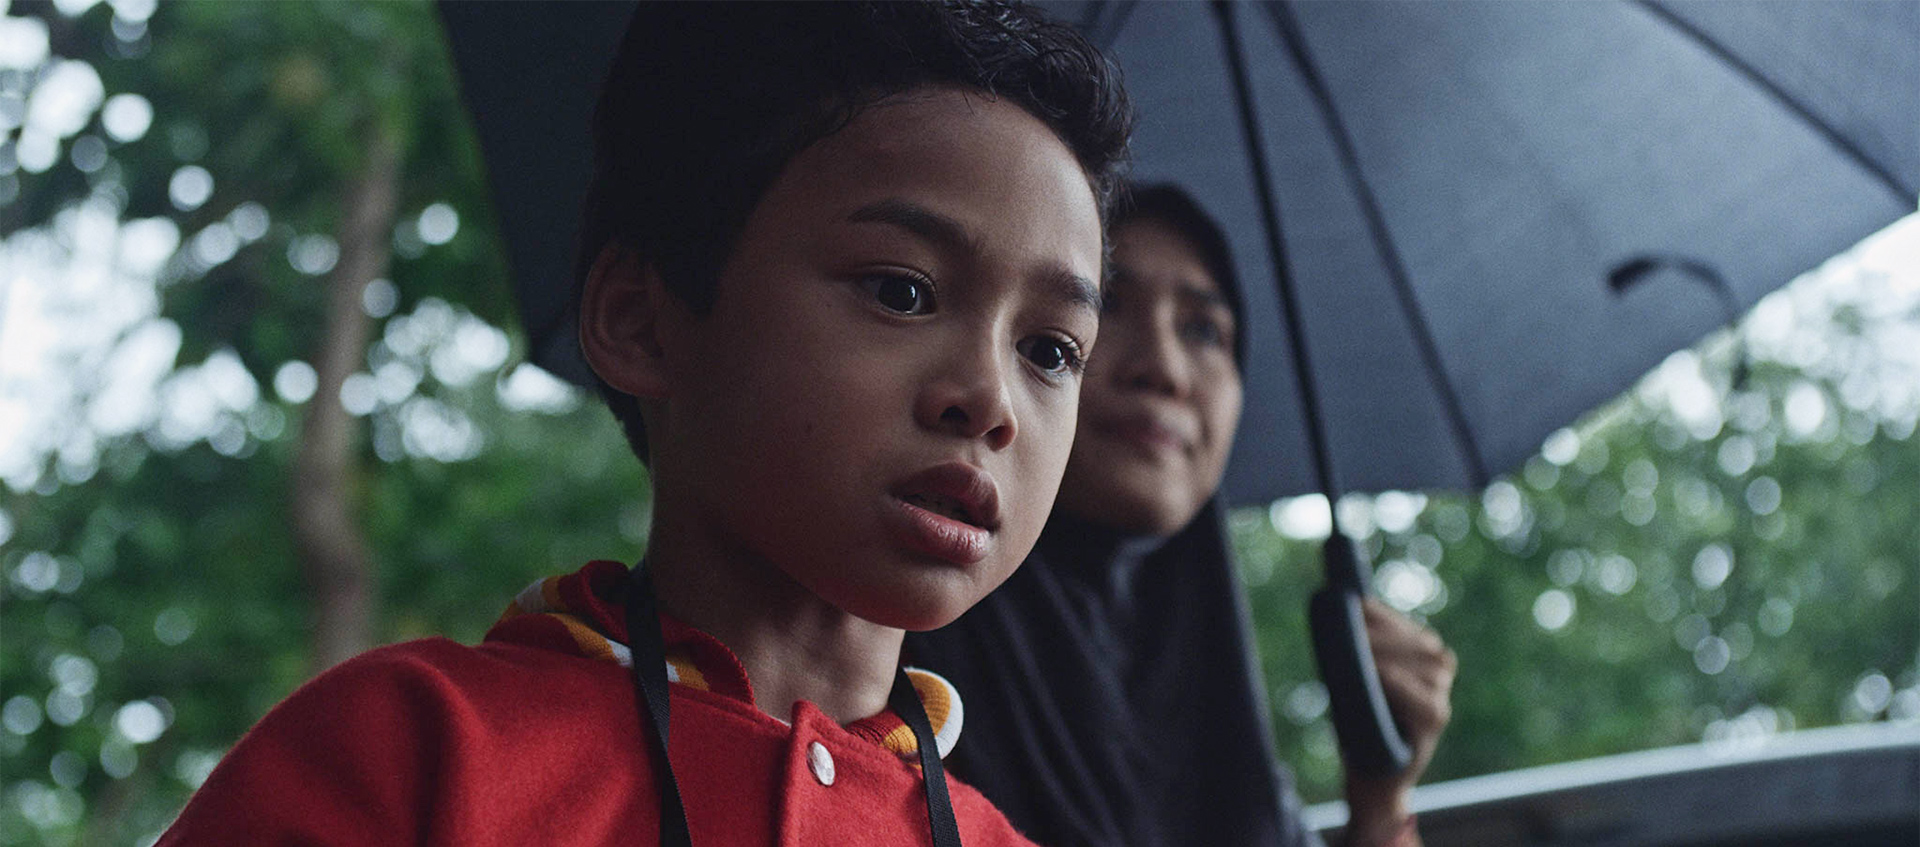 A young child stands under an umbrella